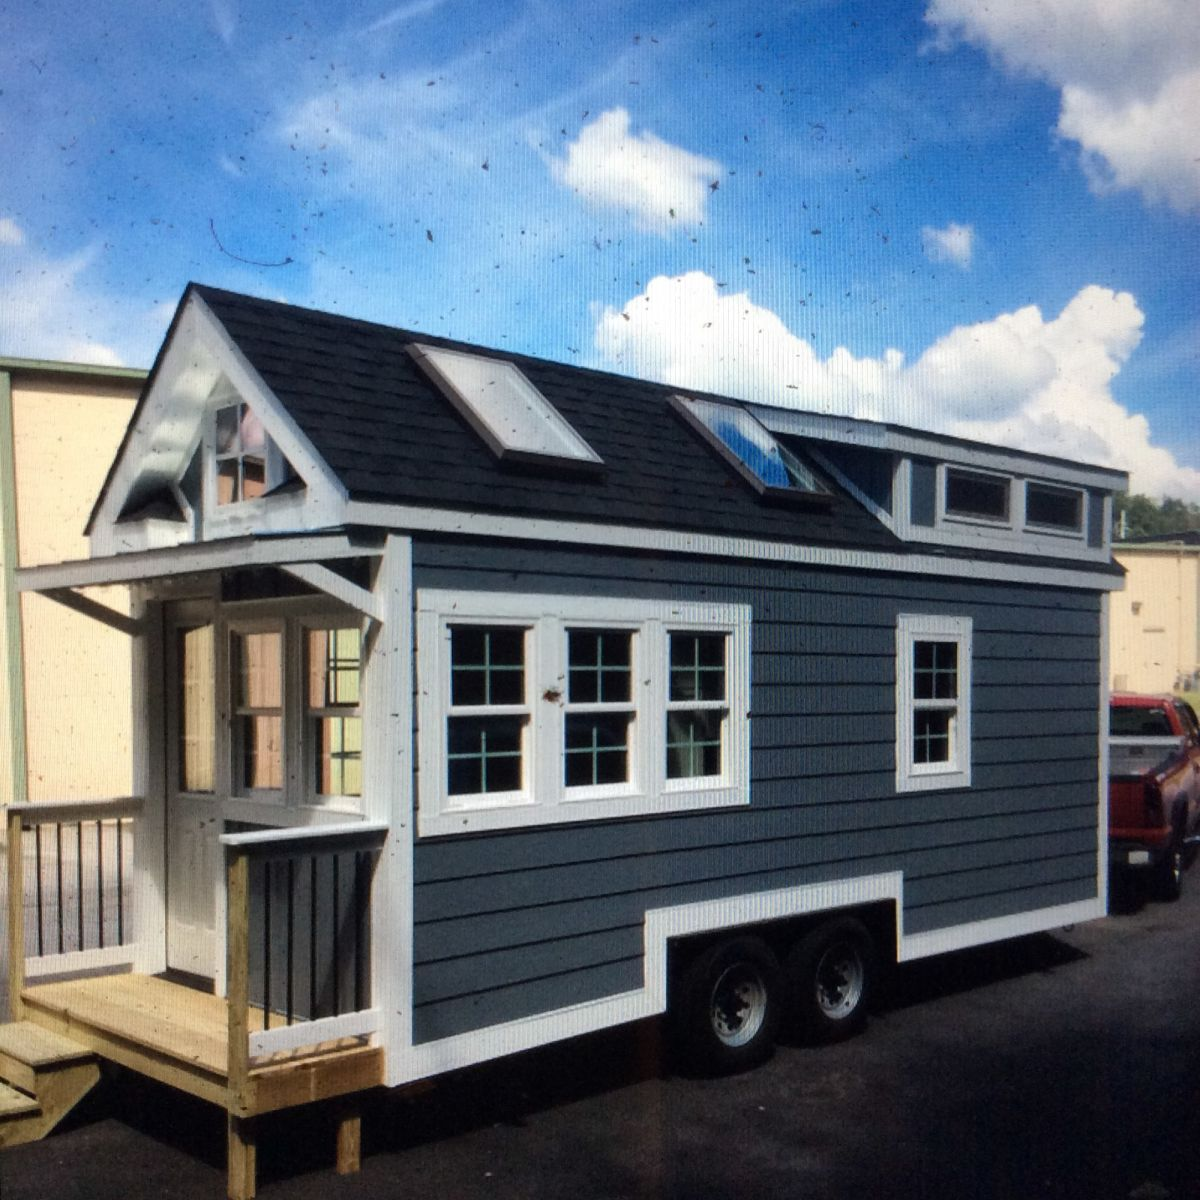 Beautifully Constructed 20 Foot Craftsman Tiny House Model